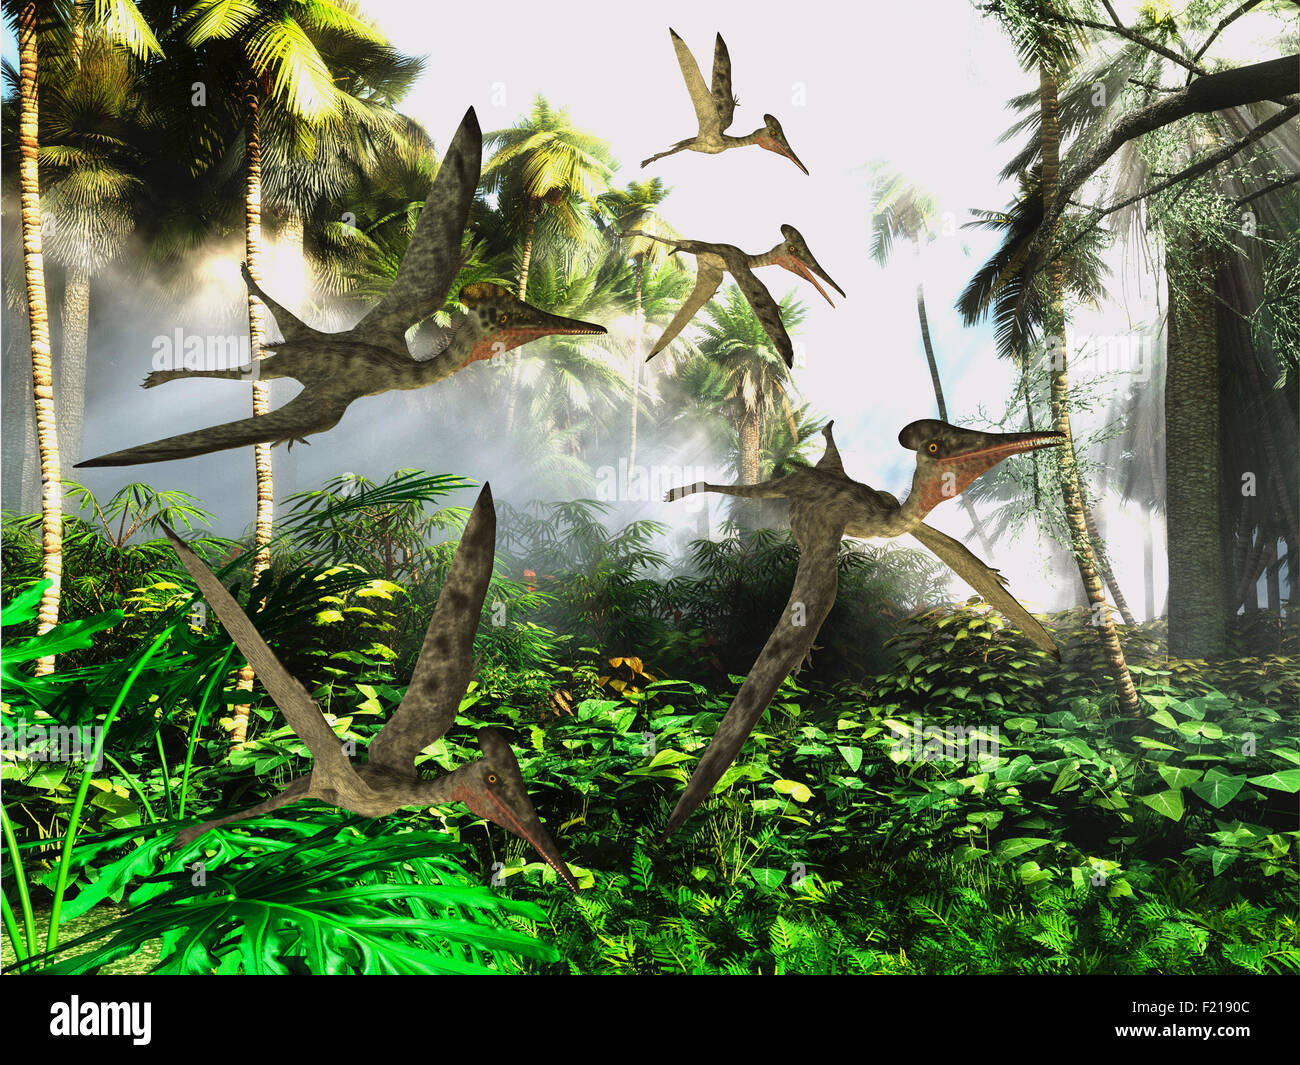 A flock of Pterodactylus dinosaur reptiles fly over the jungle searching for their next meal. - Stock Image